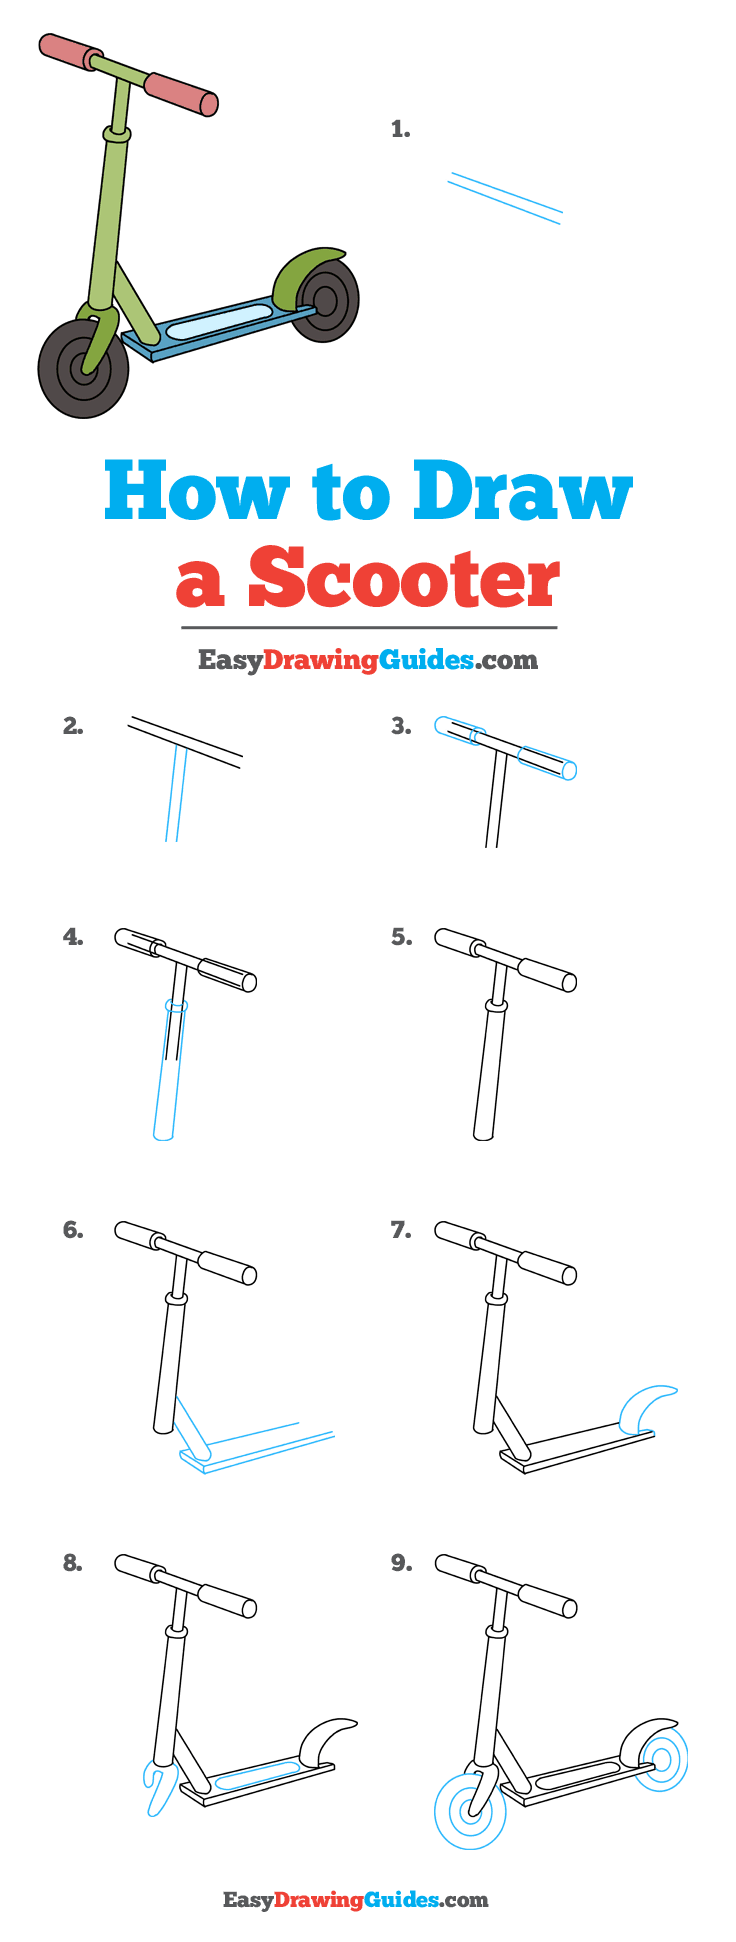 graphic free stock How to Draw a Scooter